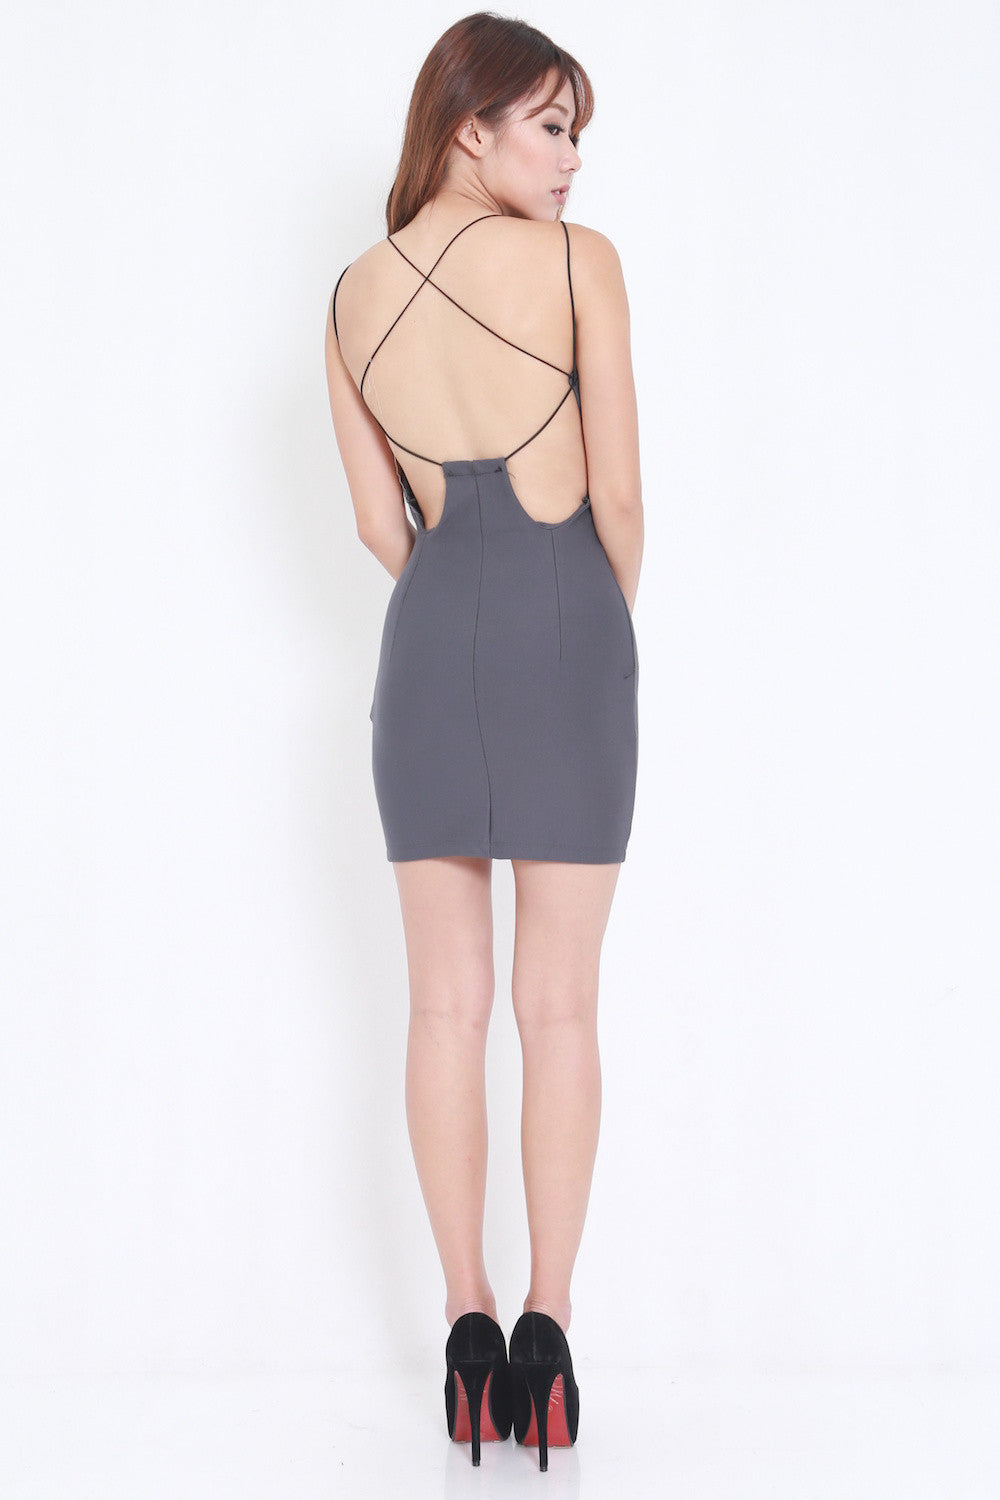 Sexy Back Dress (Grey)